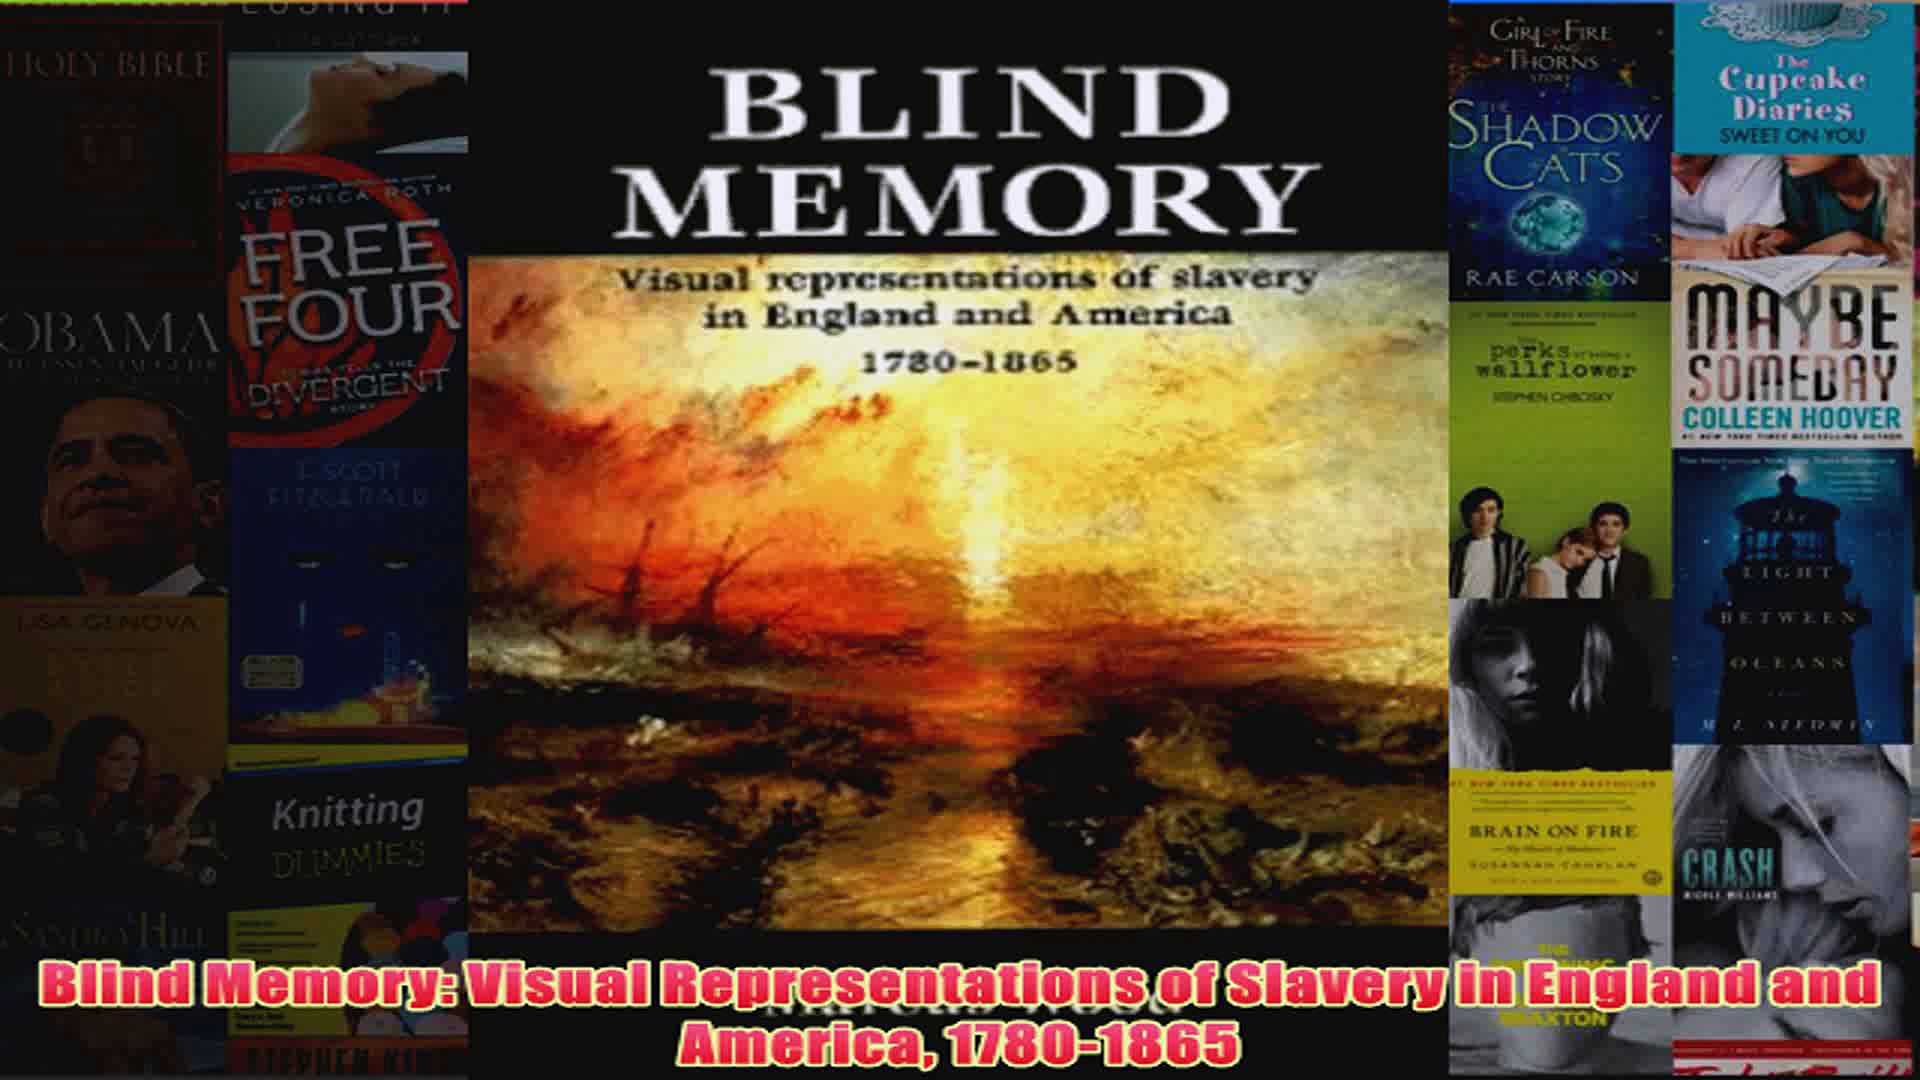 Blind Memory Visual Representations of Slavery in England and America 17801865